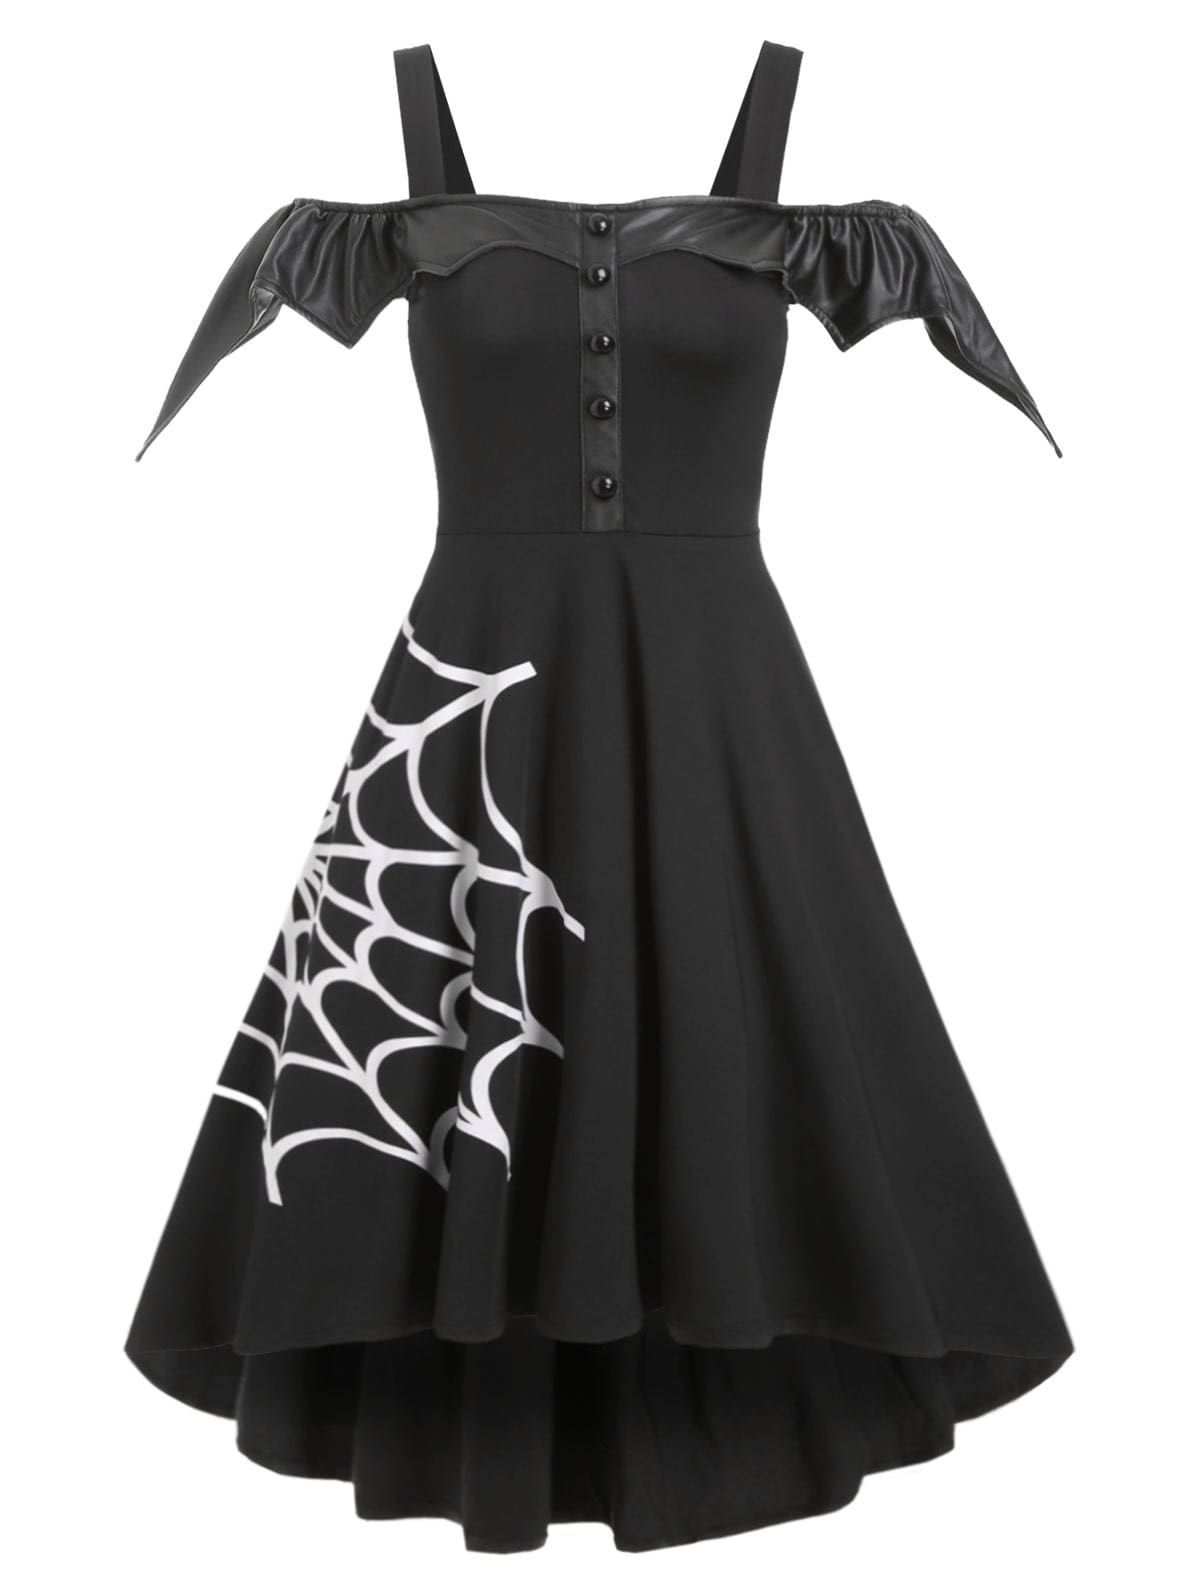 Halloween Dcp 2020 Pin by Akash Sambhaji on dcp in 2020 | Dresses, High low dress